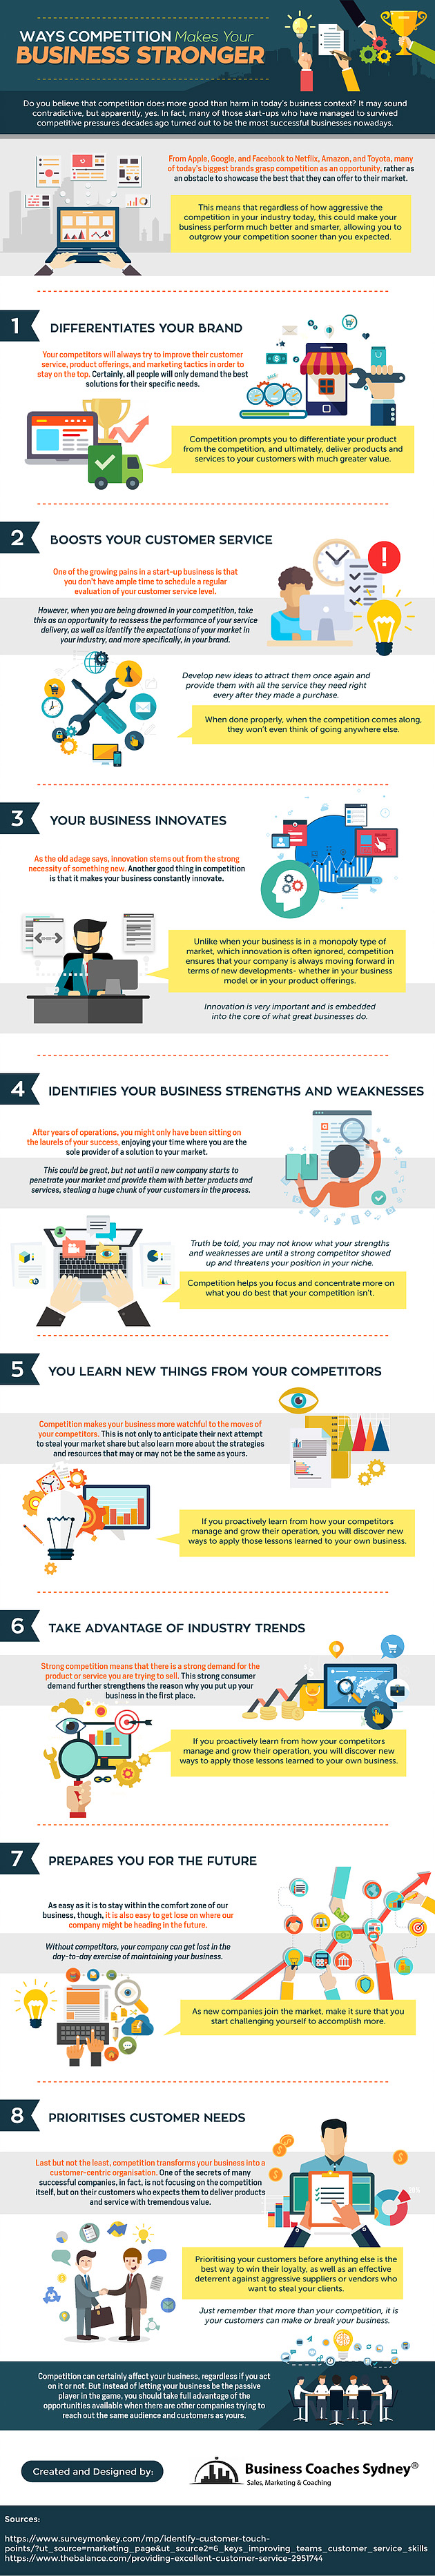 Ways Competition Makes Your Business Stronger [Infographic]